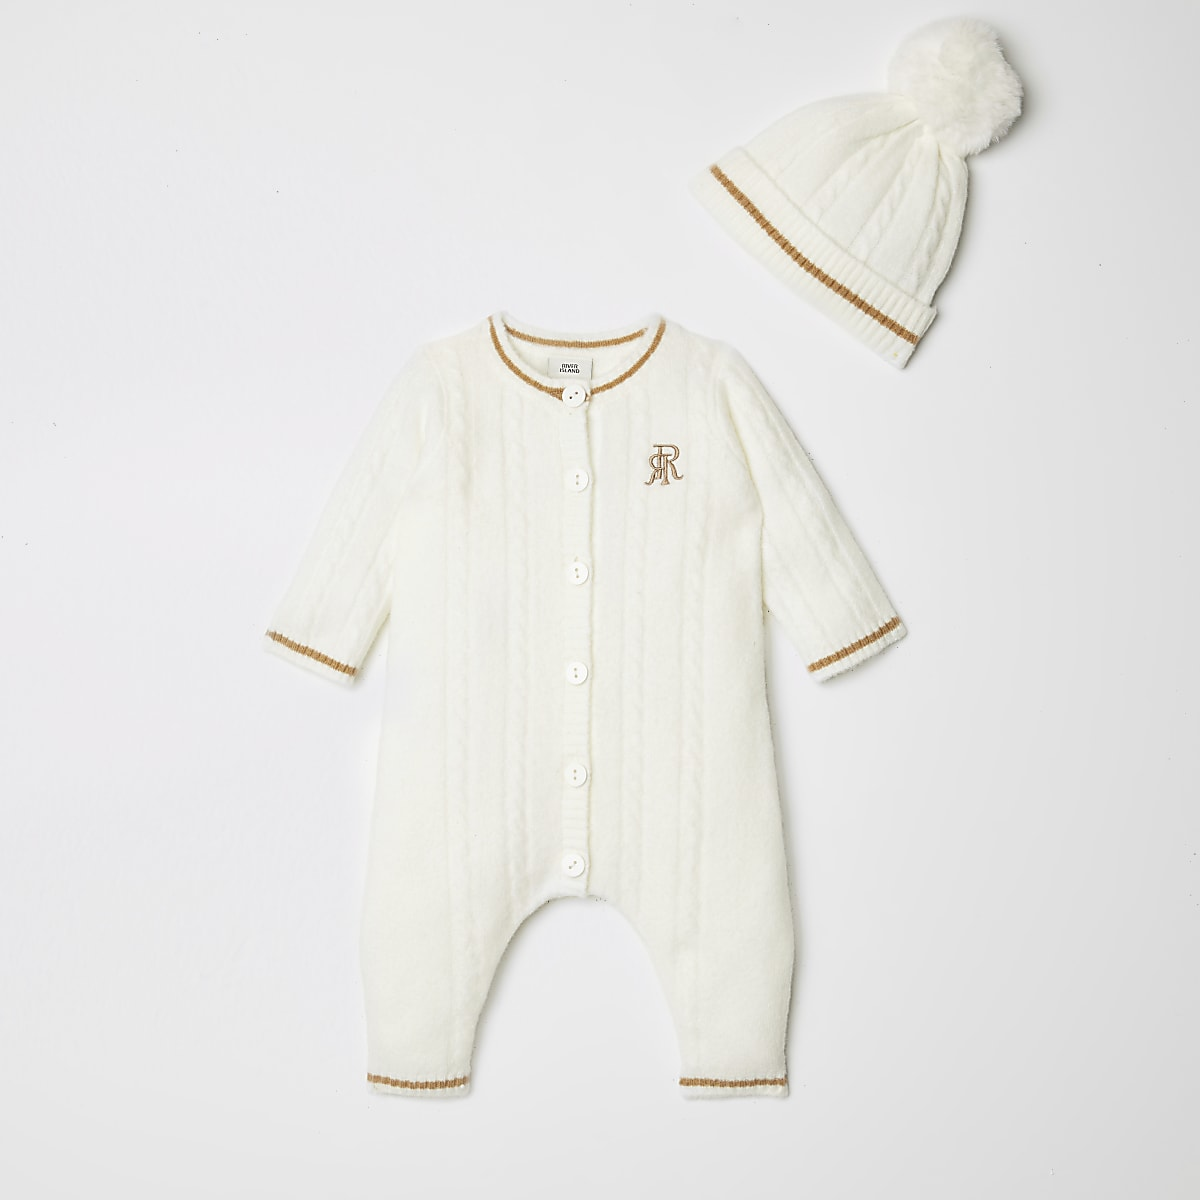 Baby cream knitted baby grow outfit with hat